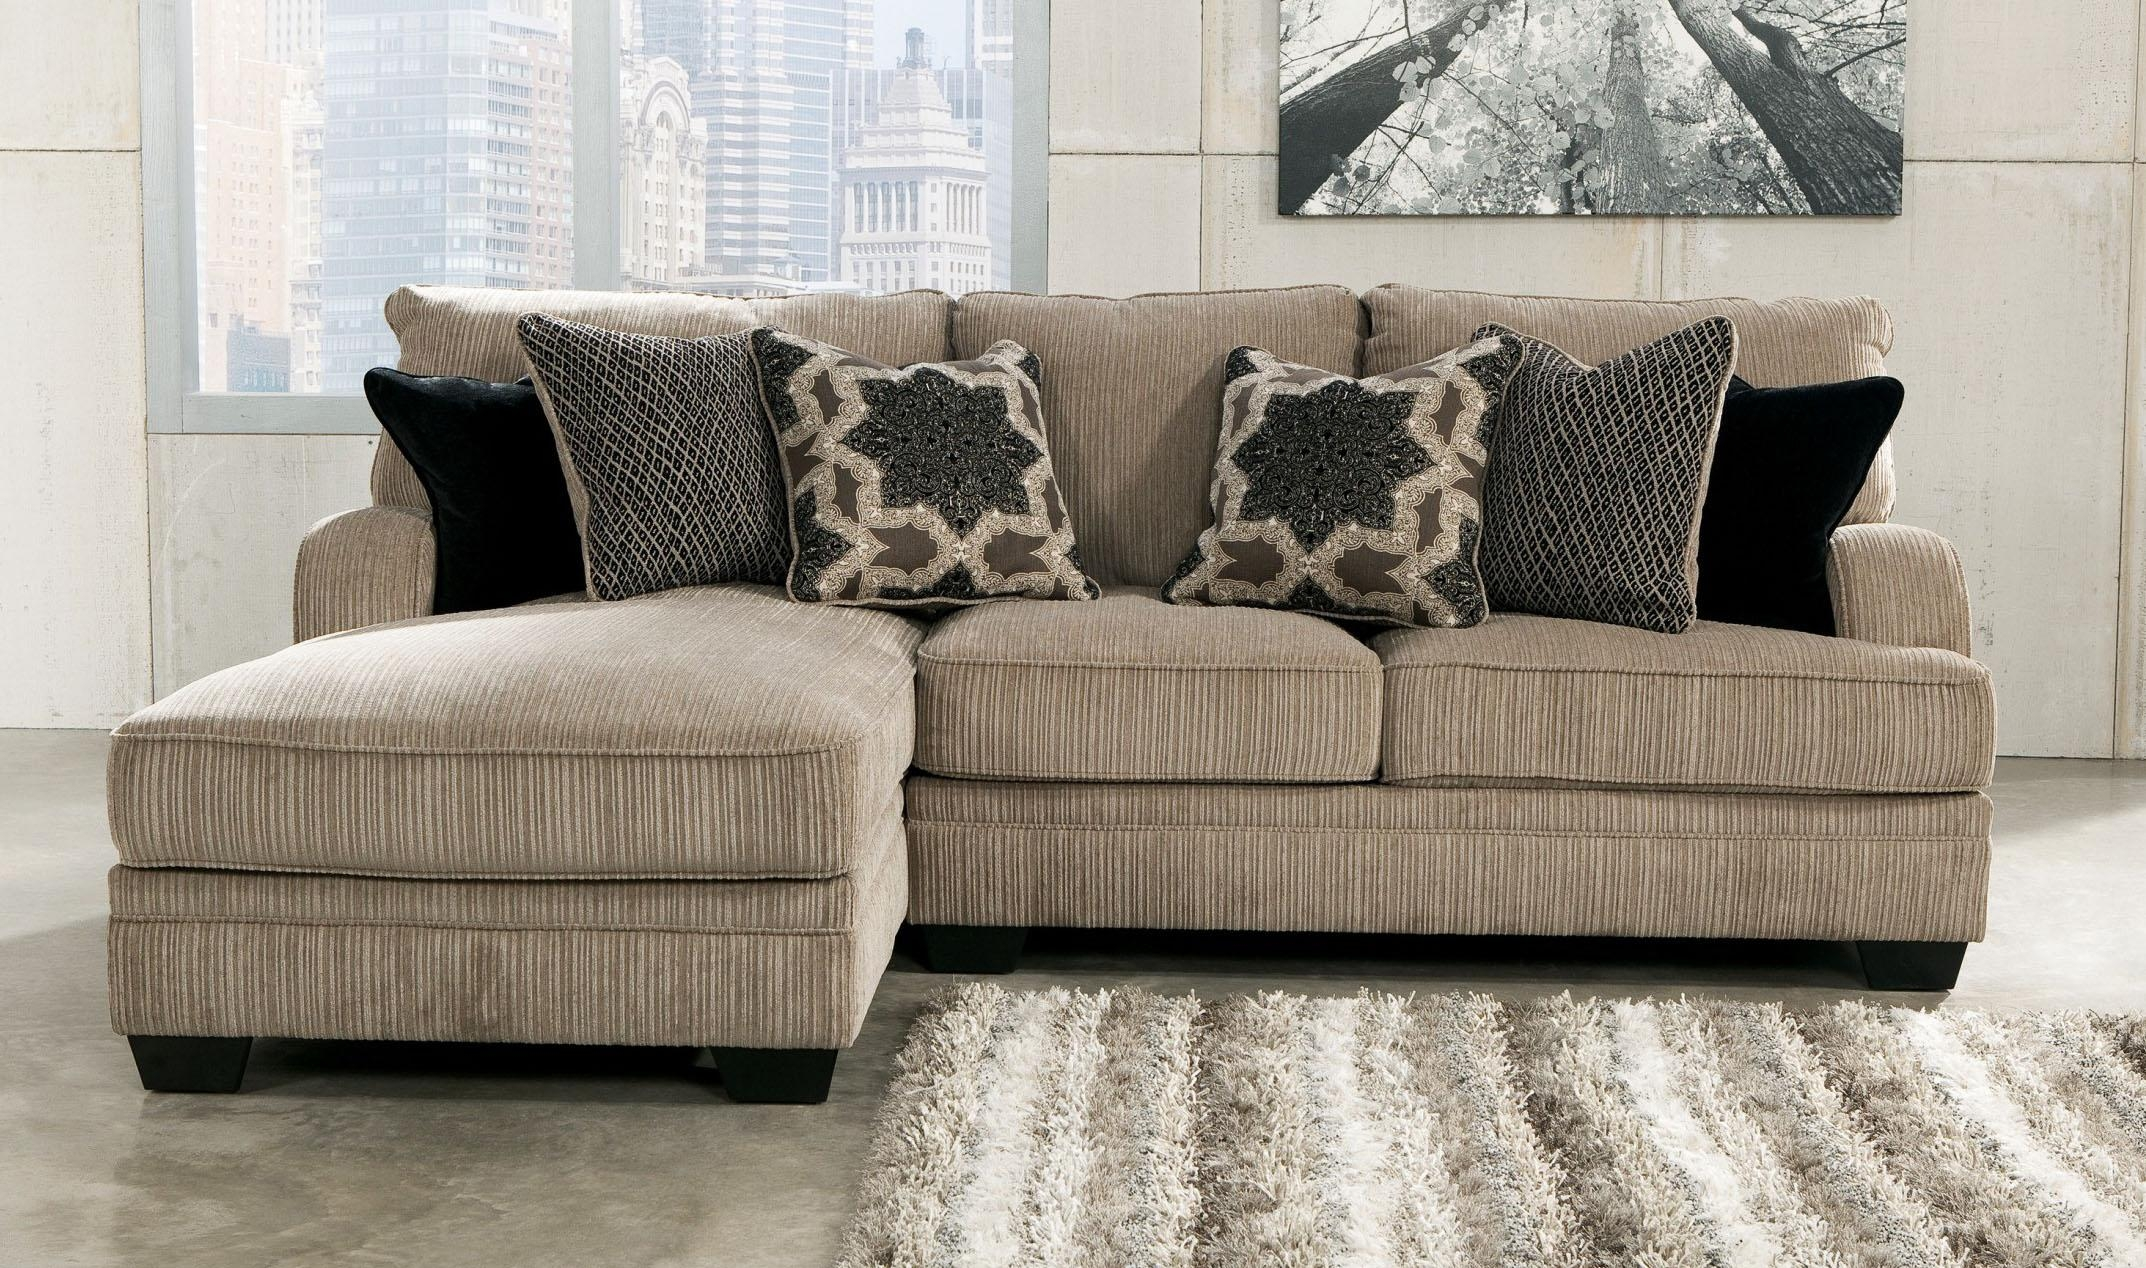 Orange Leather Sectional Sofa With Chaise Lounge Added Three Regarding Small Sofas With Chaise Lounge (Image 7 of 20)